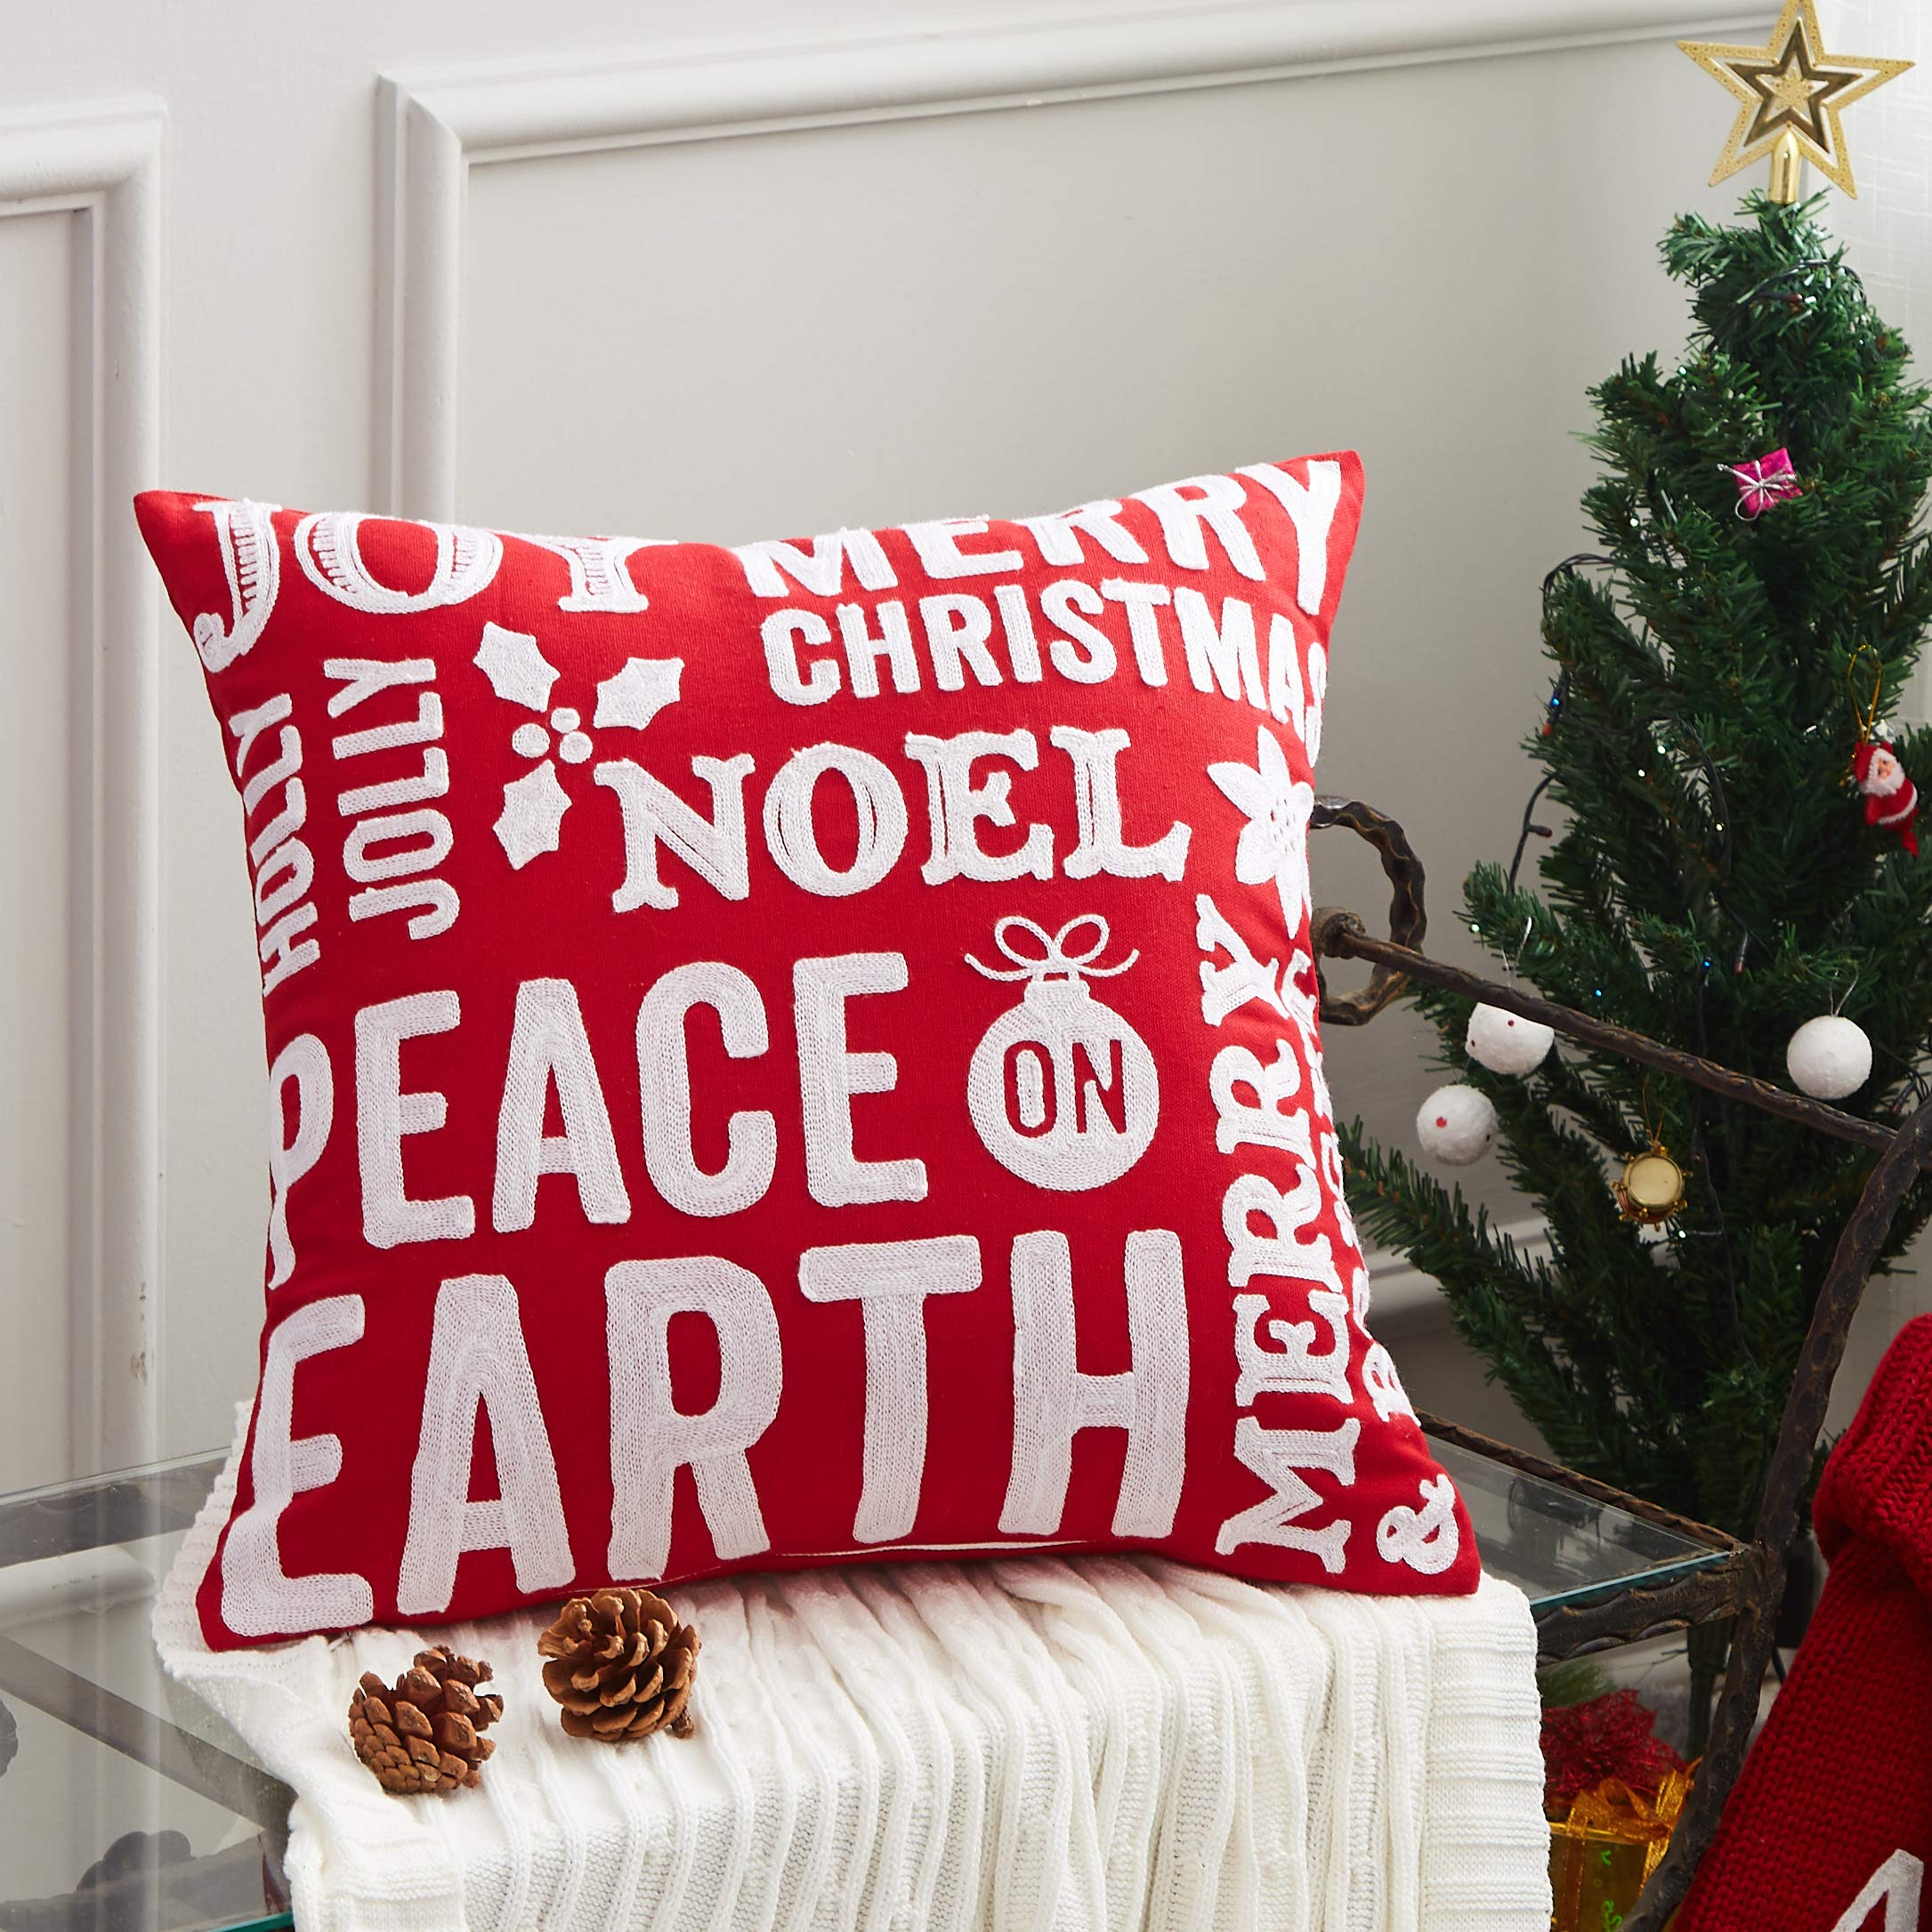 "Cassiel Home Christmas Sayings Decorative Pillow Cover,1 PCS Embroidery Christmas Pillow Cover,100% Cotton Throw Pillow Cover 18x18""/45x45cm"